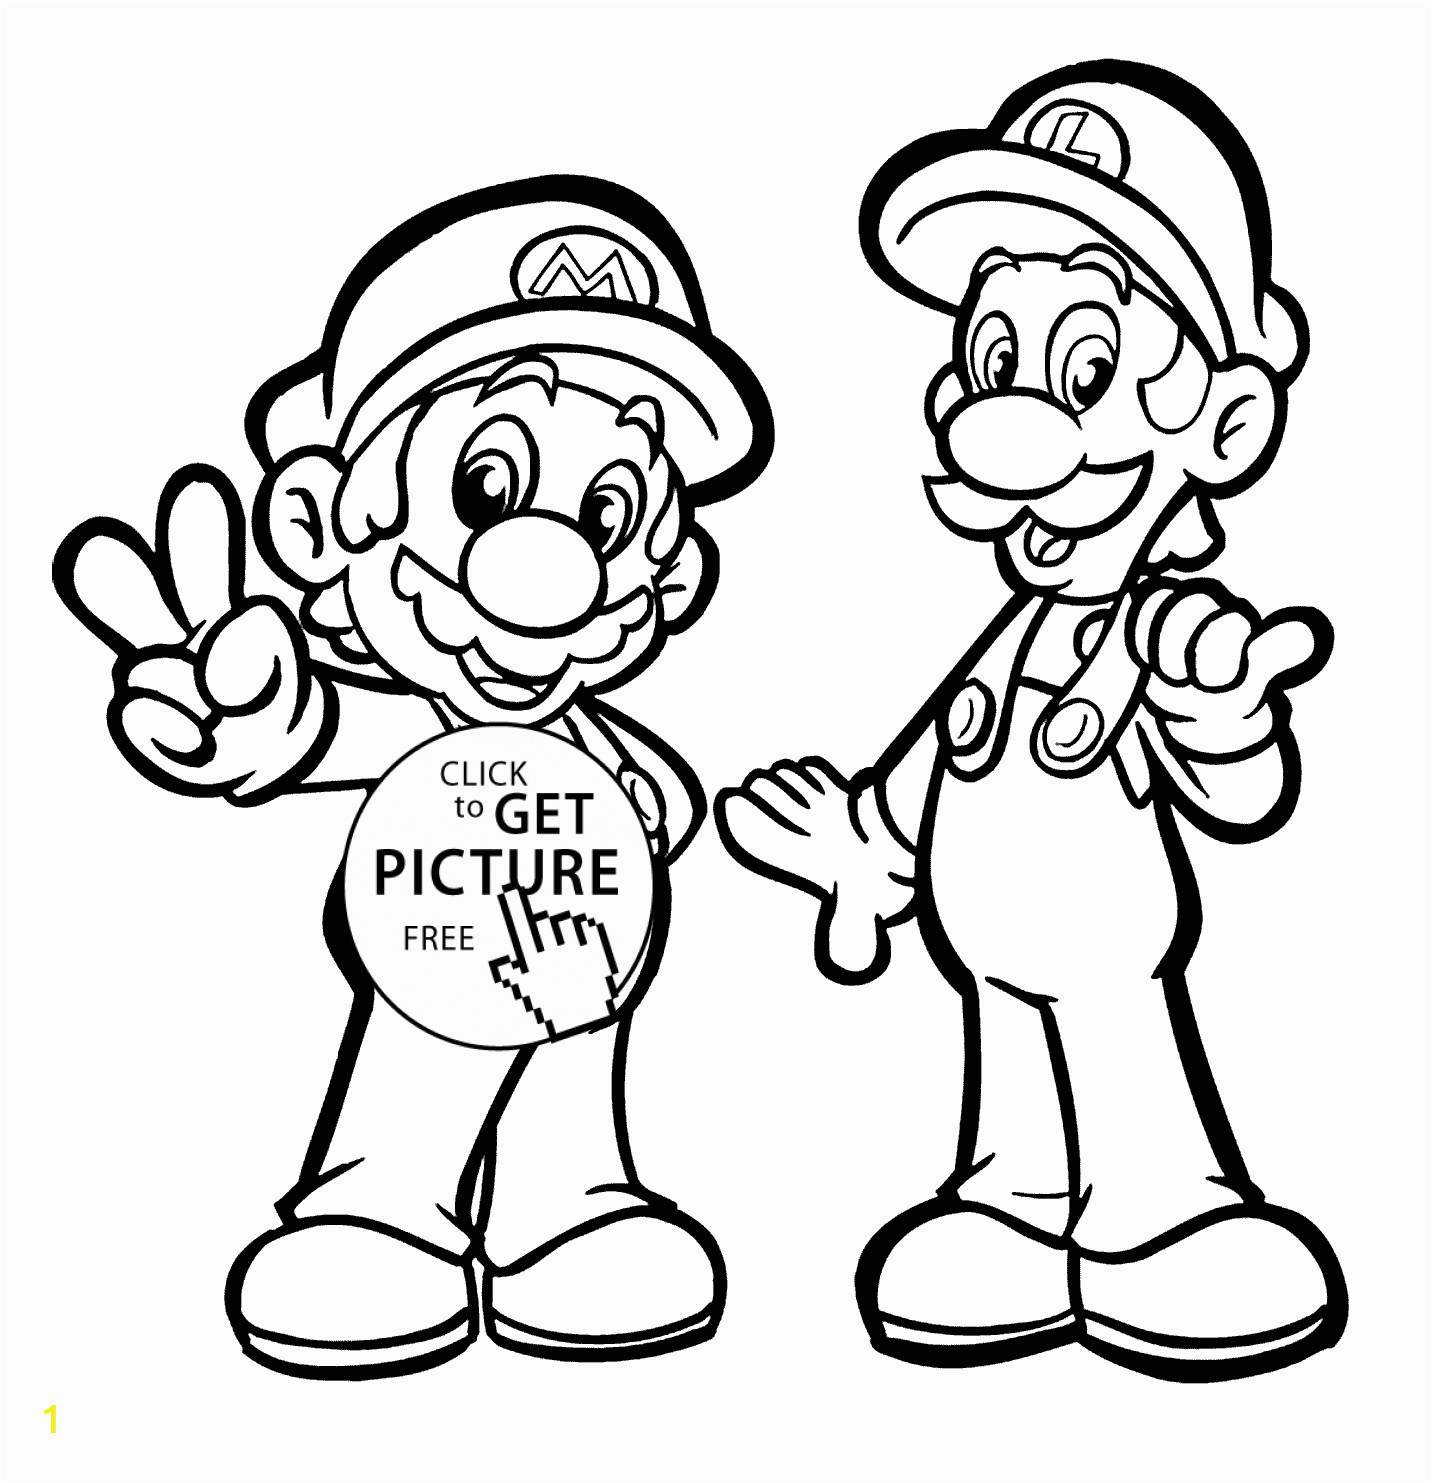 Free Printable Mario and Luigi Coloring Pages Mario and Luigi Coloring Pages for Kids Printable Free